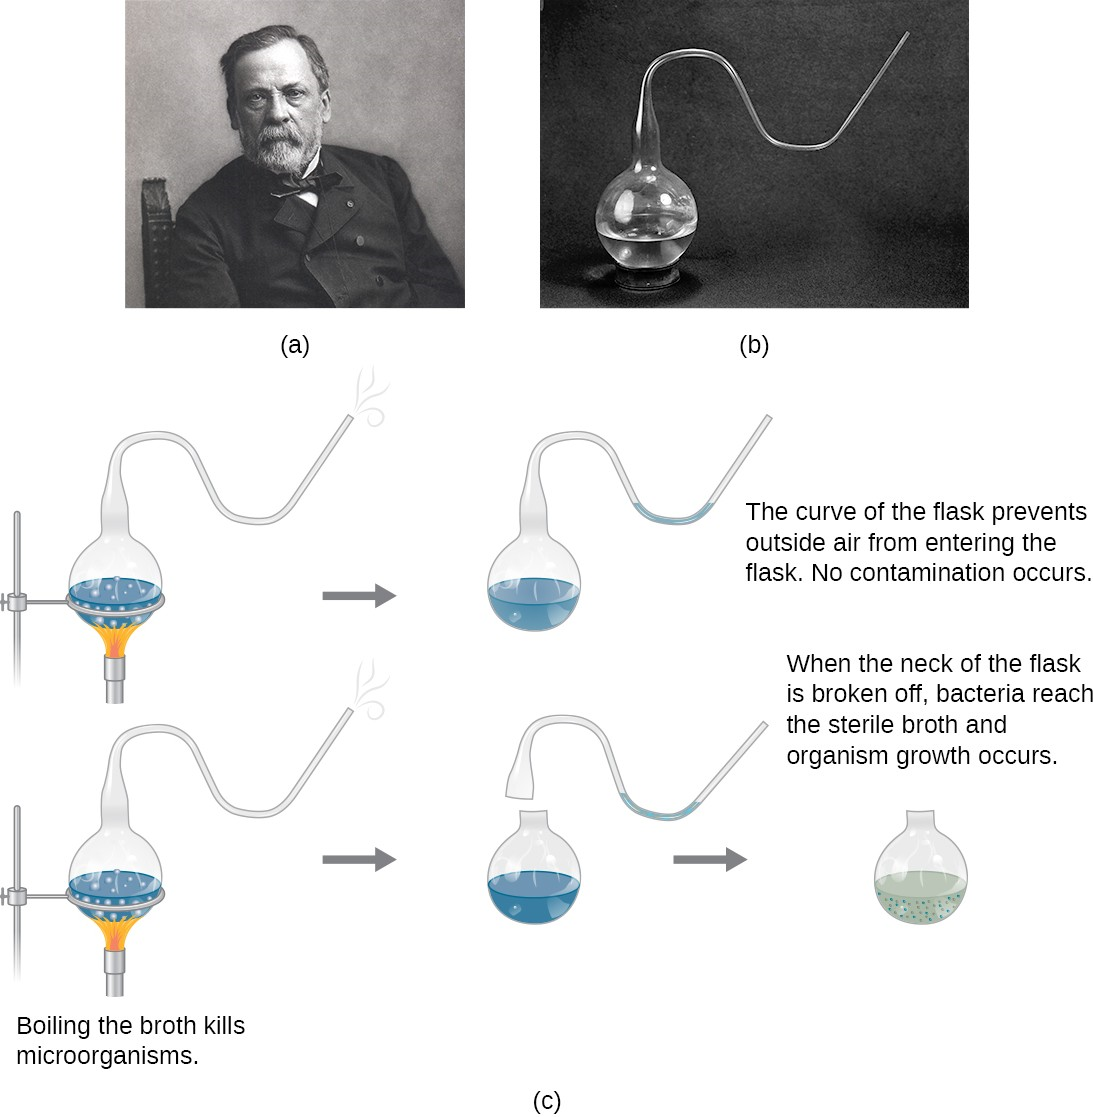 (a) French scientist Louis Pasteur, who definitively refuted the long-disputed theory of spontaneous generation. (b) The unique swan-neck feature of the flasks used in Pasteur 's experiment allowed air to enter the flask but prevented the entry of bacterial and fungal spores. (c) Pasteur's experiment consisted of two parts. In the first part, the broth in the flask was boiled to sterilize it. When this broth was cooled, it remained free of contamination. In the second part of the experiment, the flask was boiled and then the neck was broken off. The broth in this flask became contaminated.